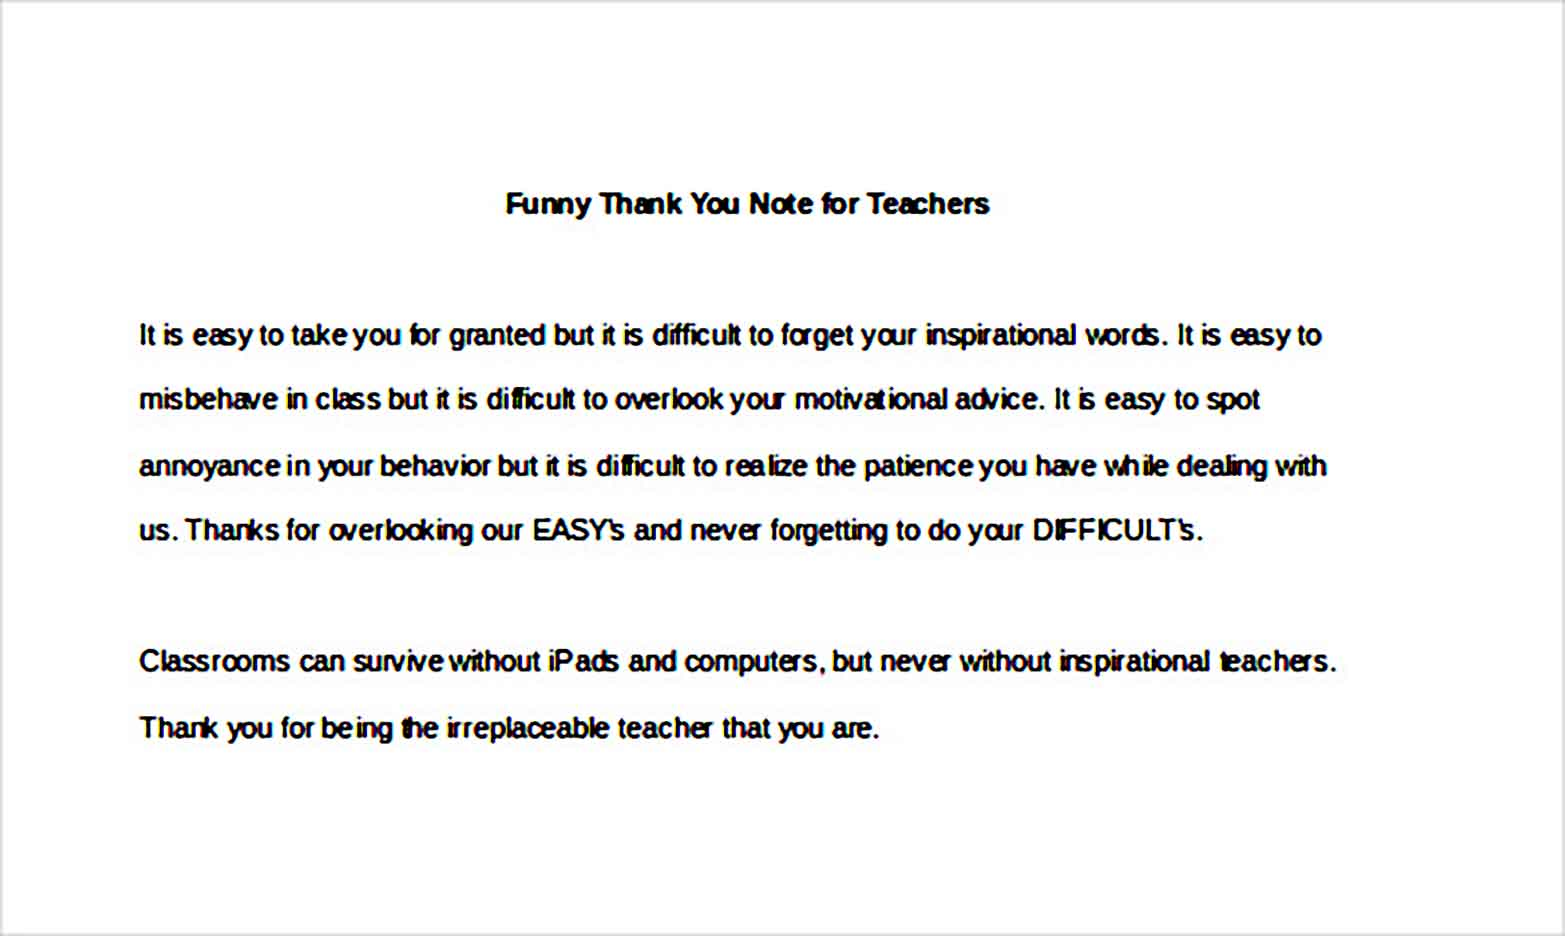 Funny Thank You Note for Teachers1